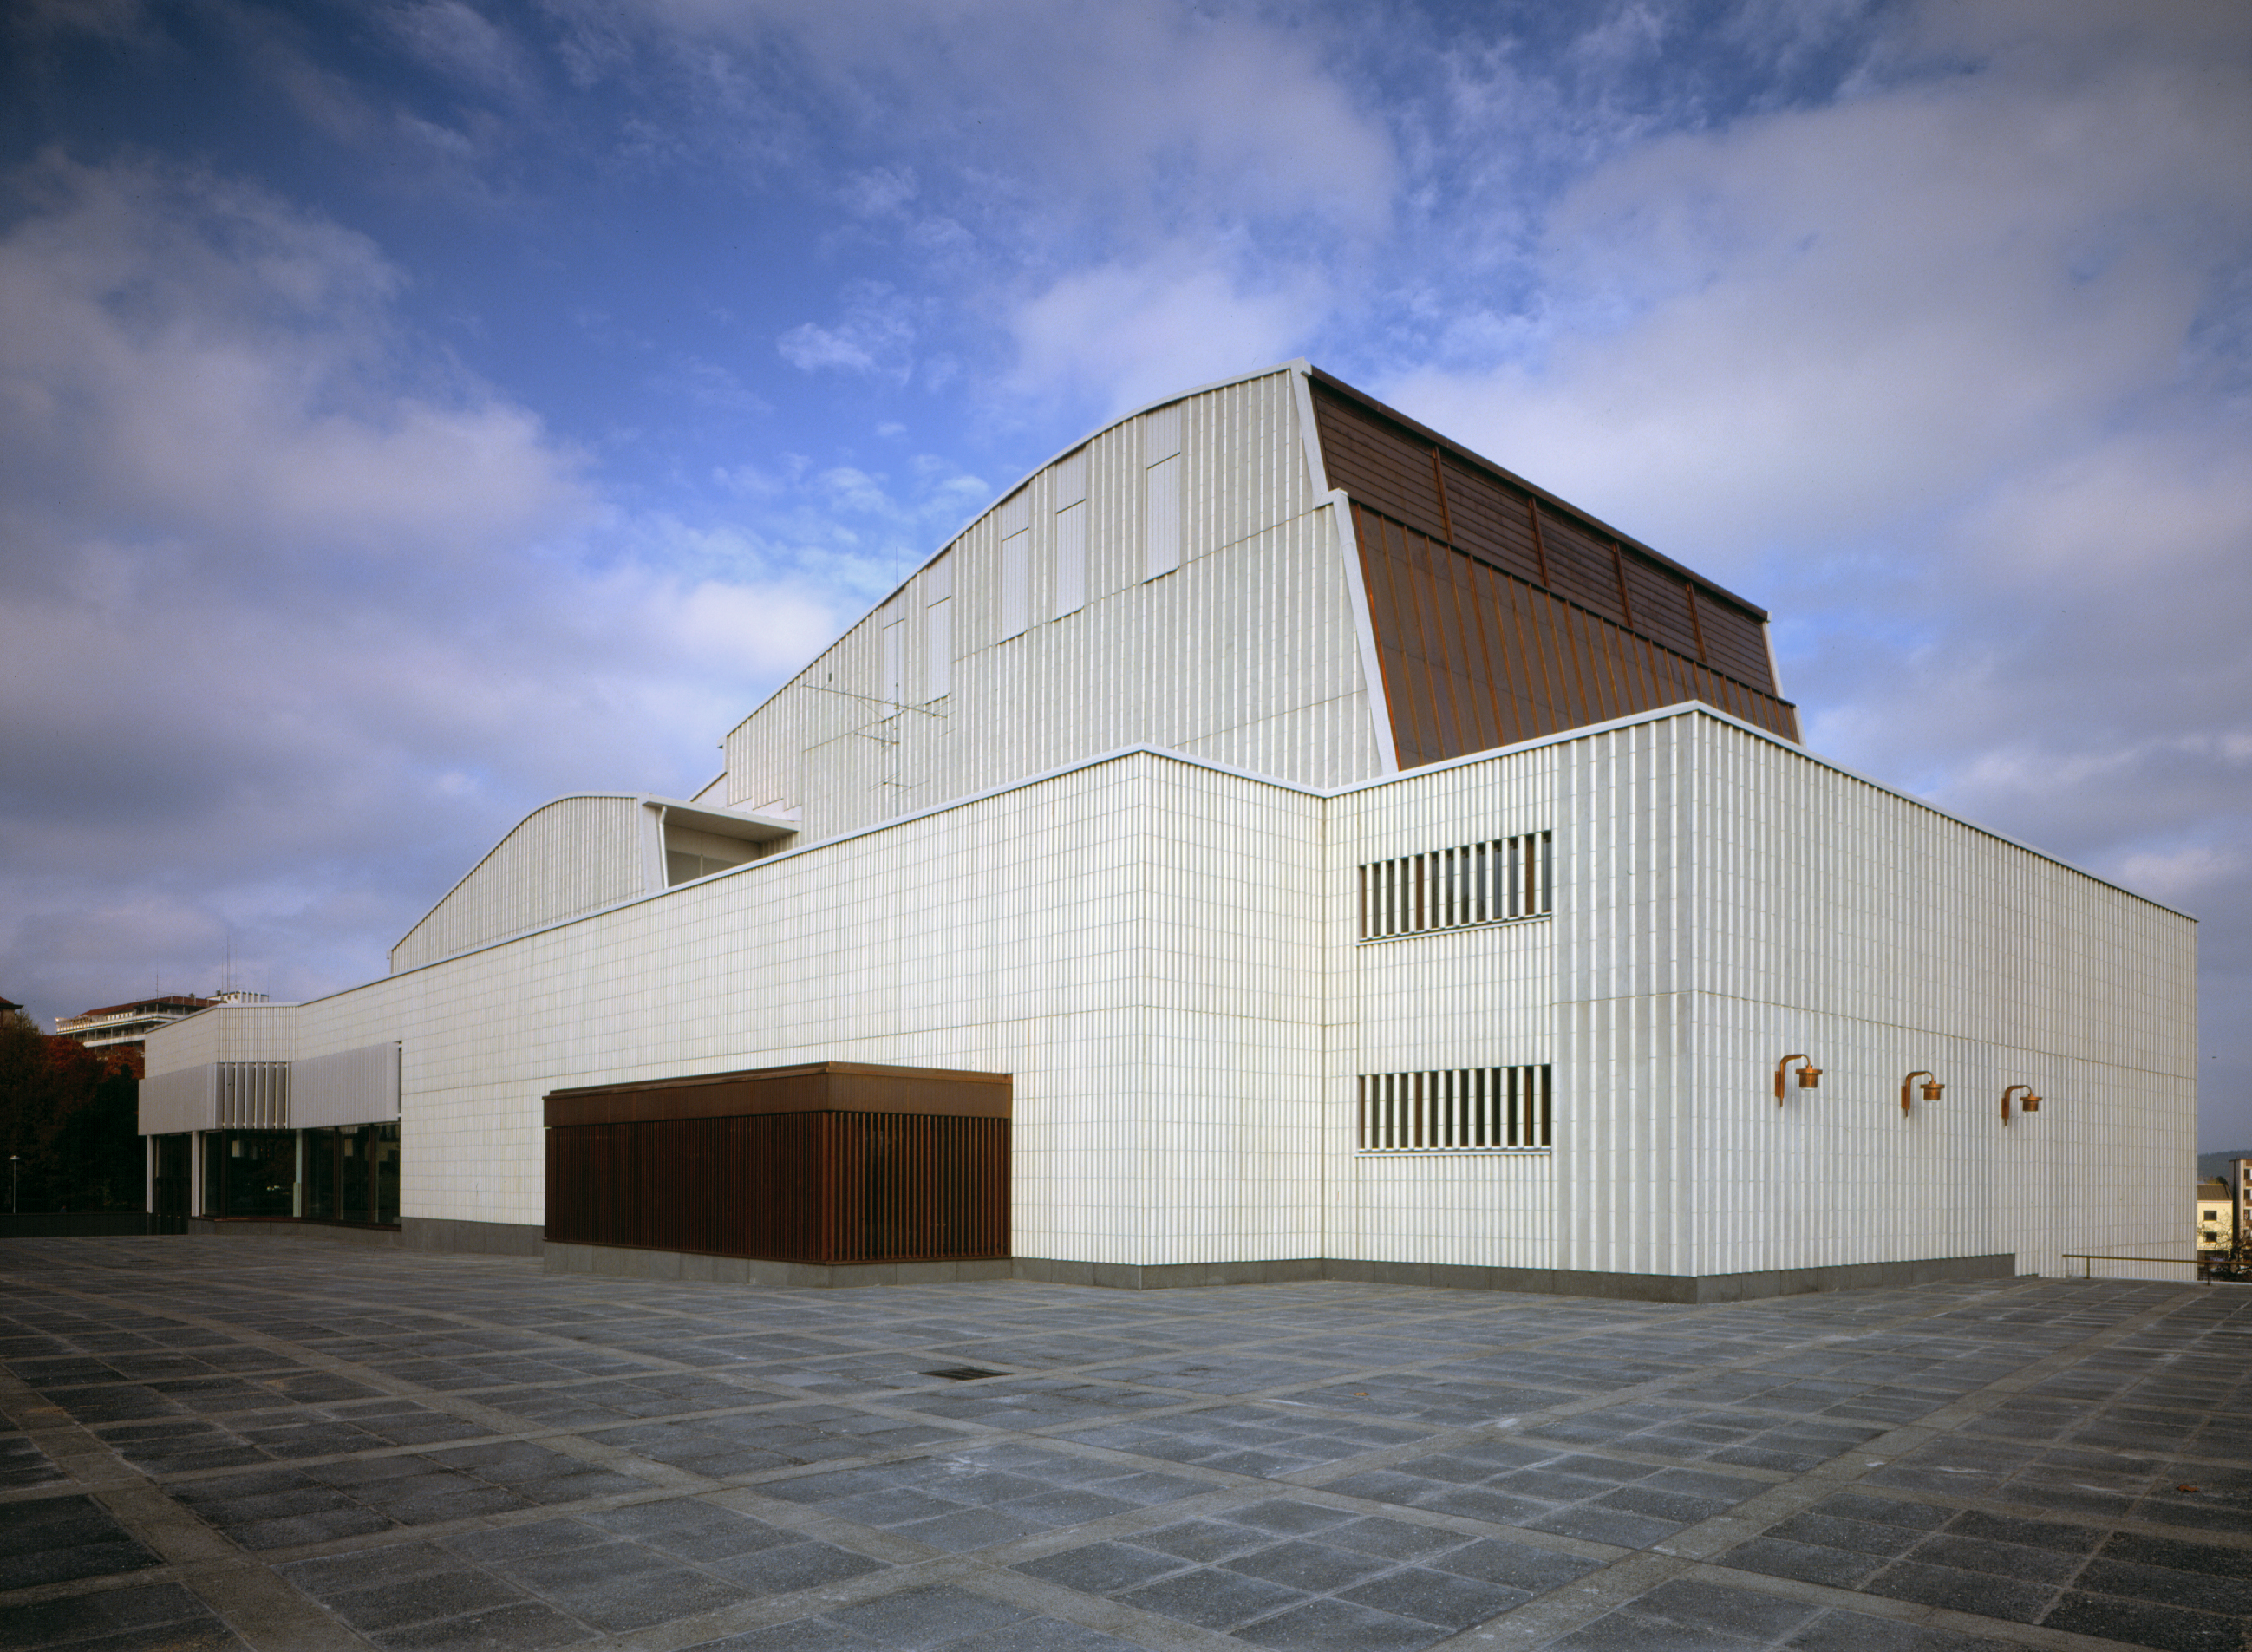 The Florence of the North Alvar Aalto u00b4s architecture in Jyväskylä exhibition is on show at the